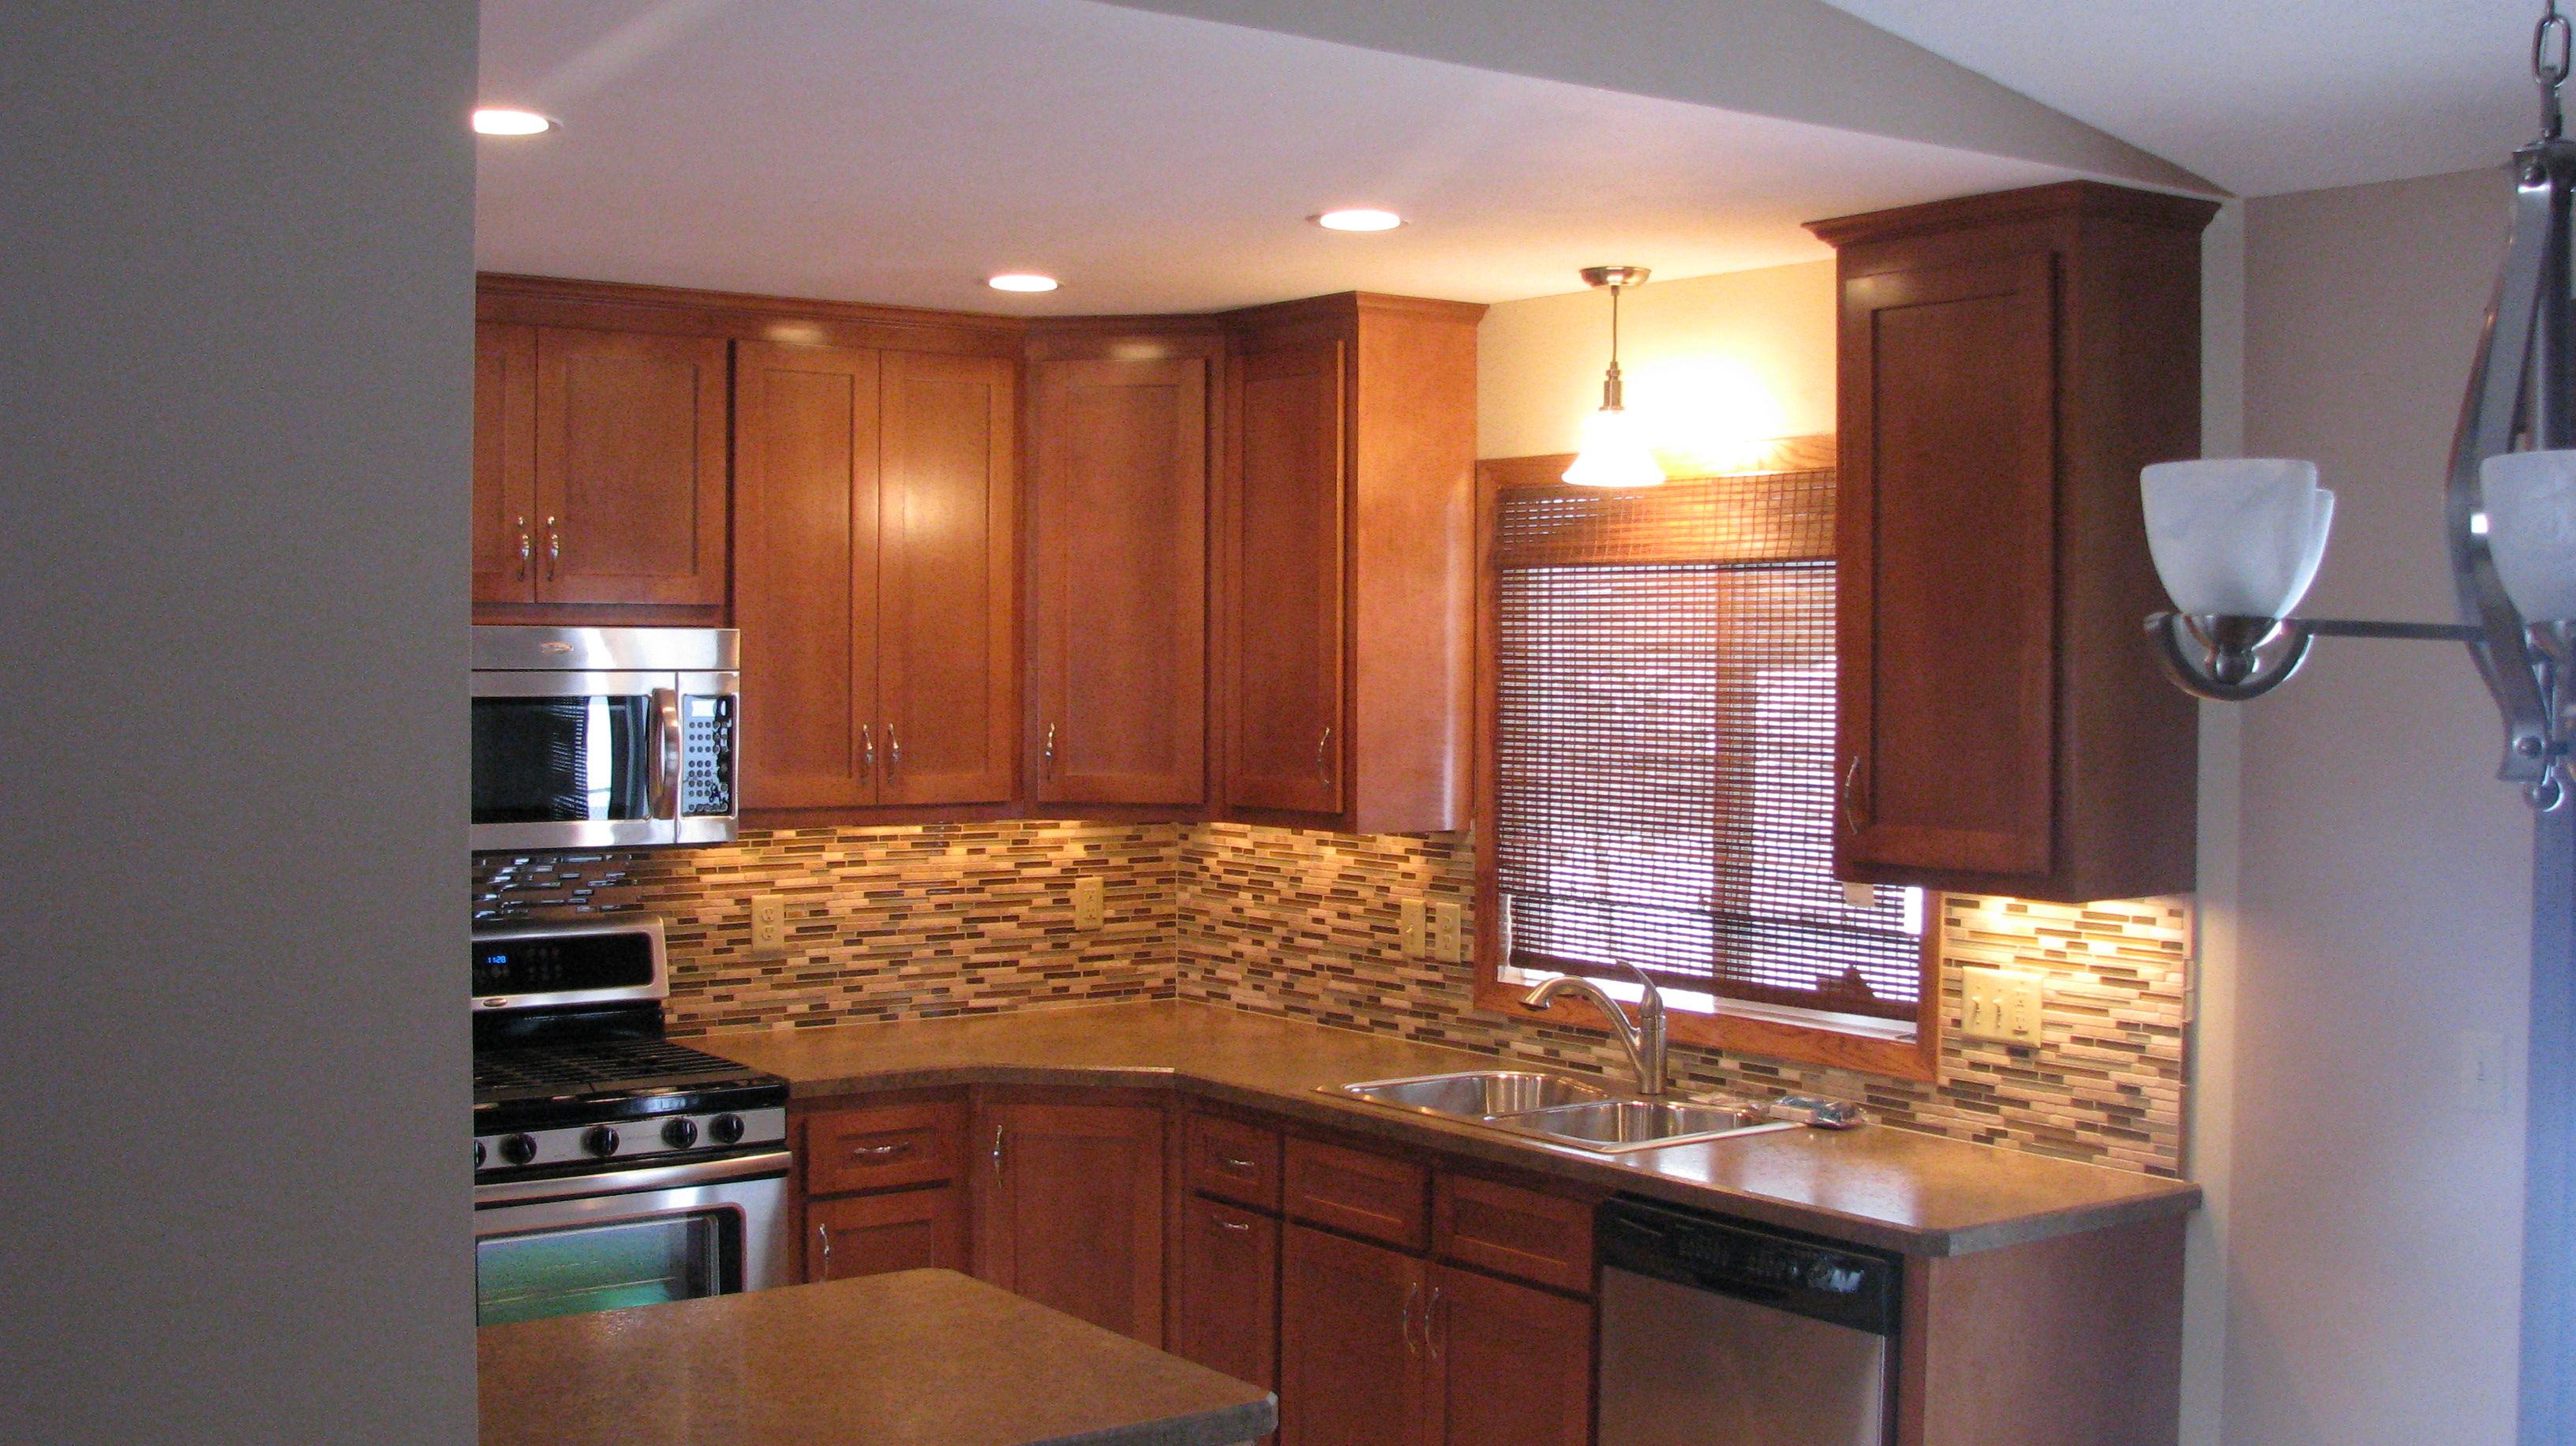 Split entry kitchen remodel remodeling kitchen for Remodeling kitchen ideas